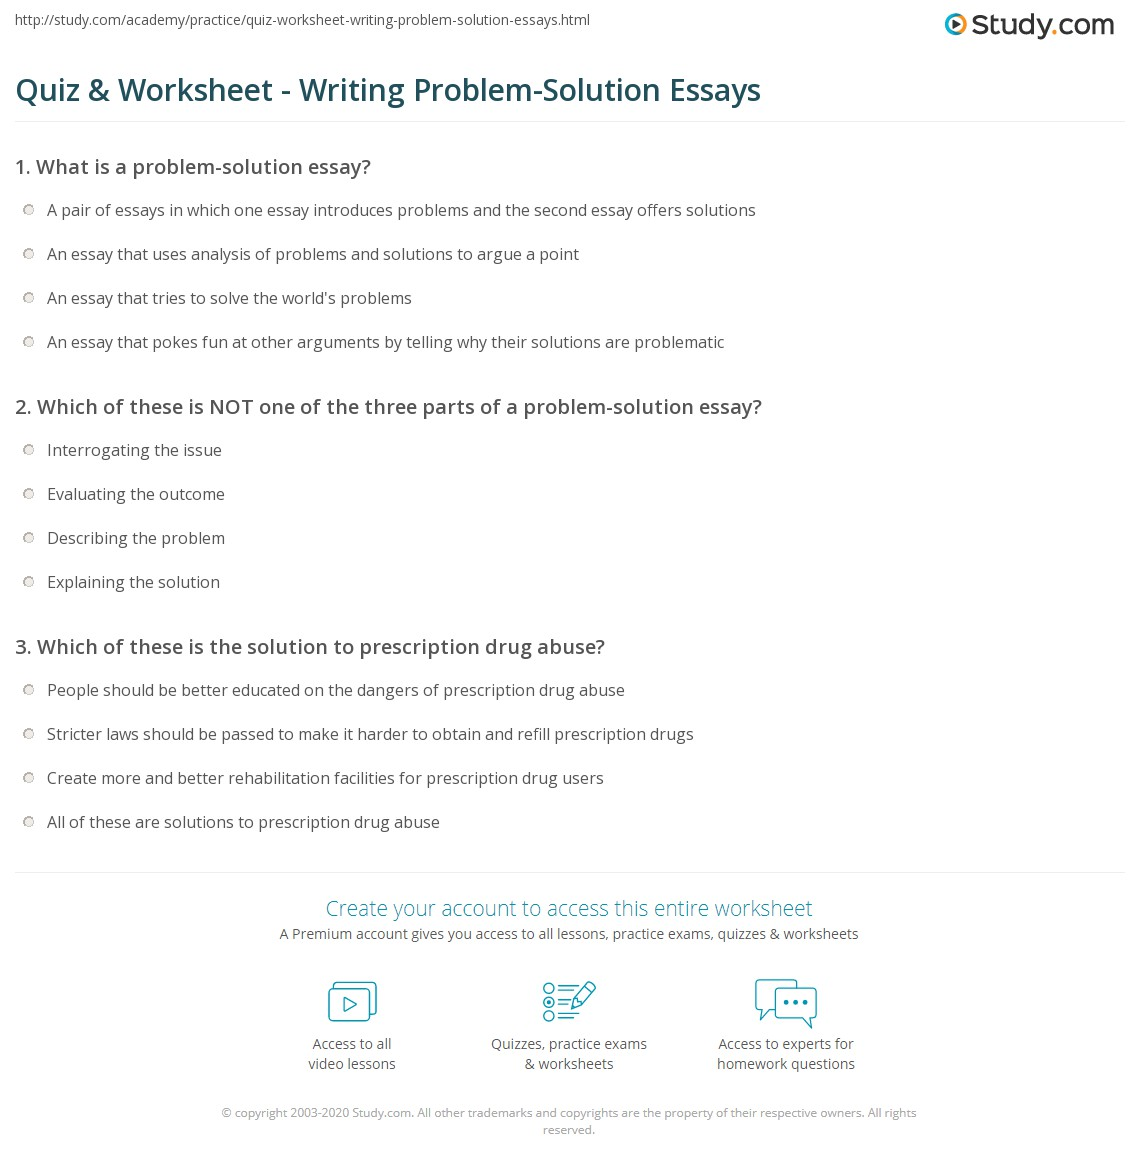 quiz worksheet writing problem solution essays. Black Bedroom Furniture Sets. Home Design Ideas